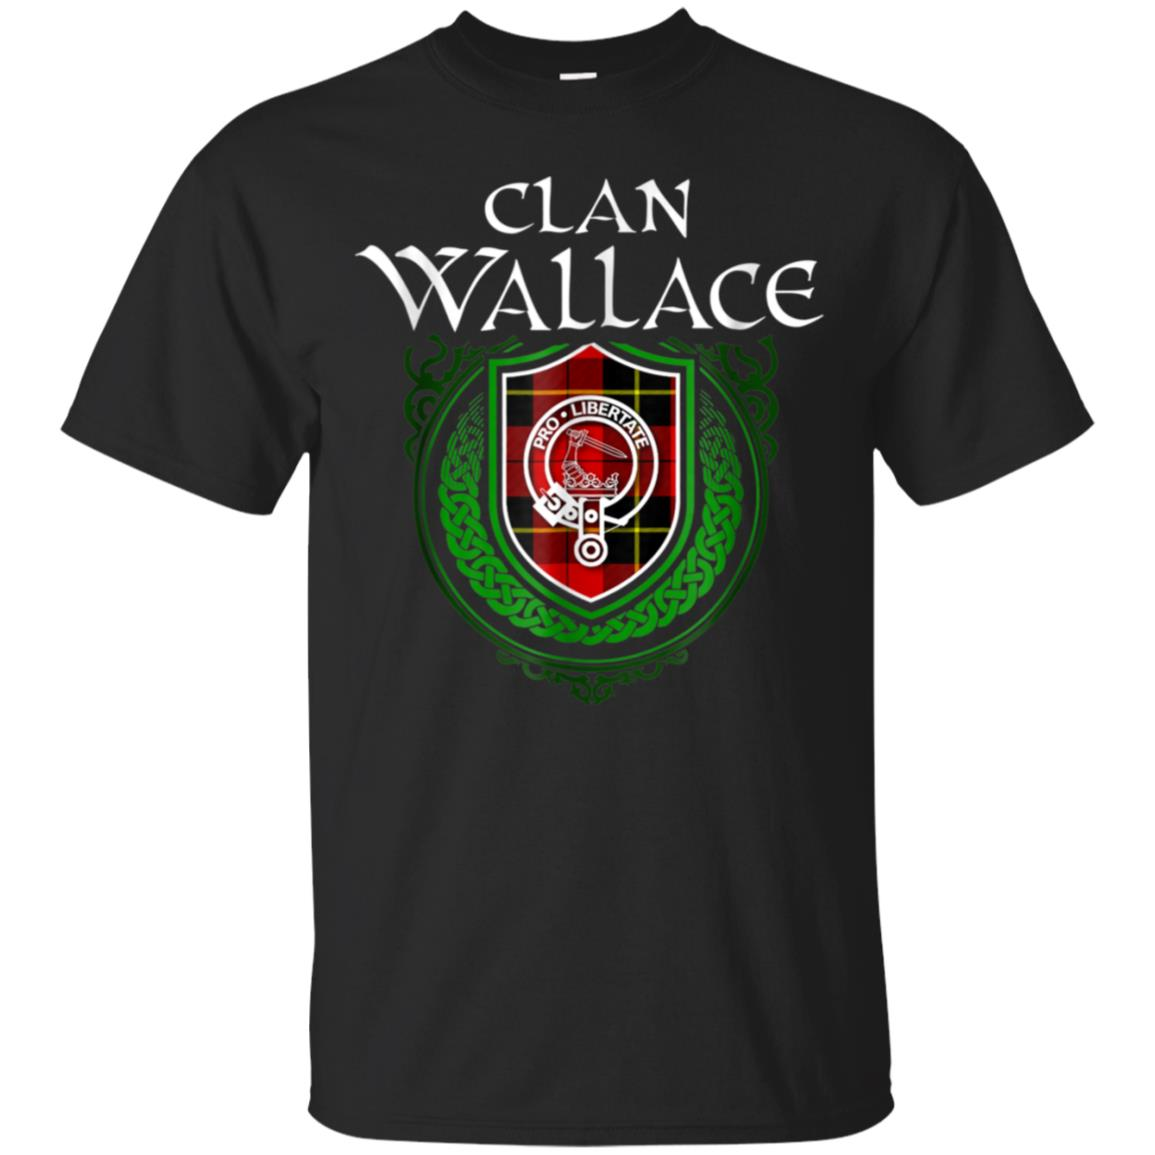 Wallace Surname Scottish Clan Tartan Crest Badge T-shirt 99promocode